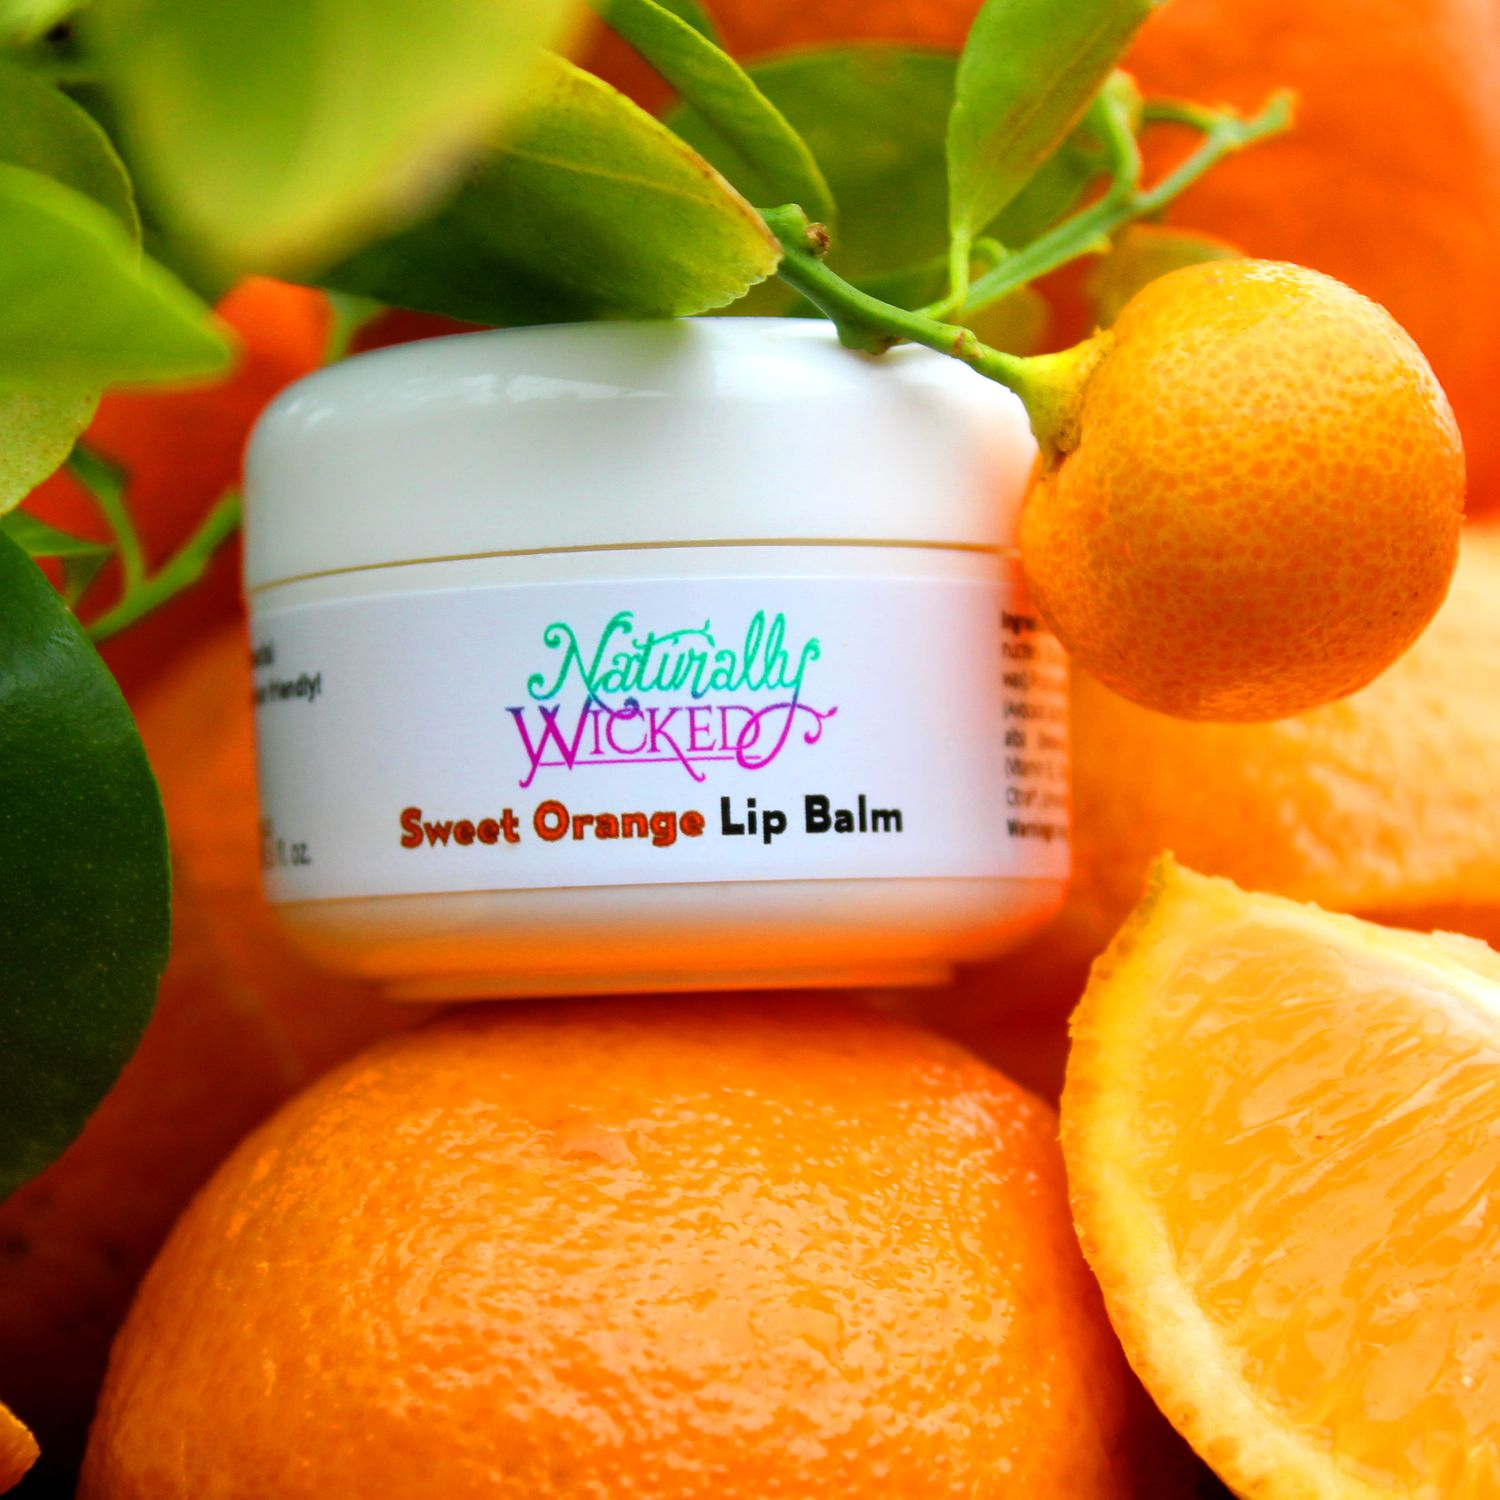 Naturally Wicked Sweet Orange Lip Balm Sat On Top Of Orange Besides A Green Citrus Tree With Fruits Attached